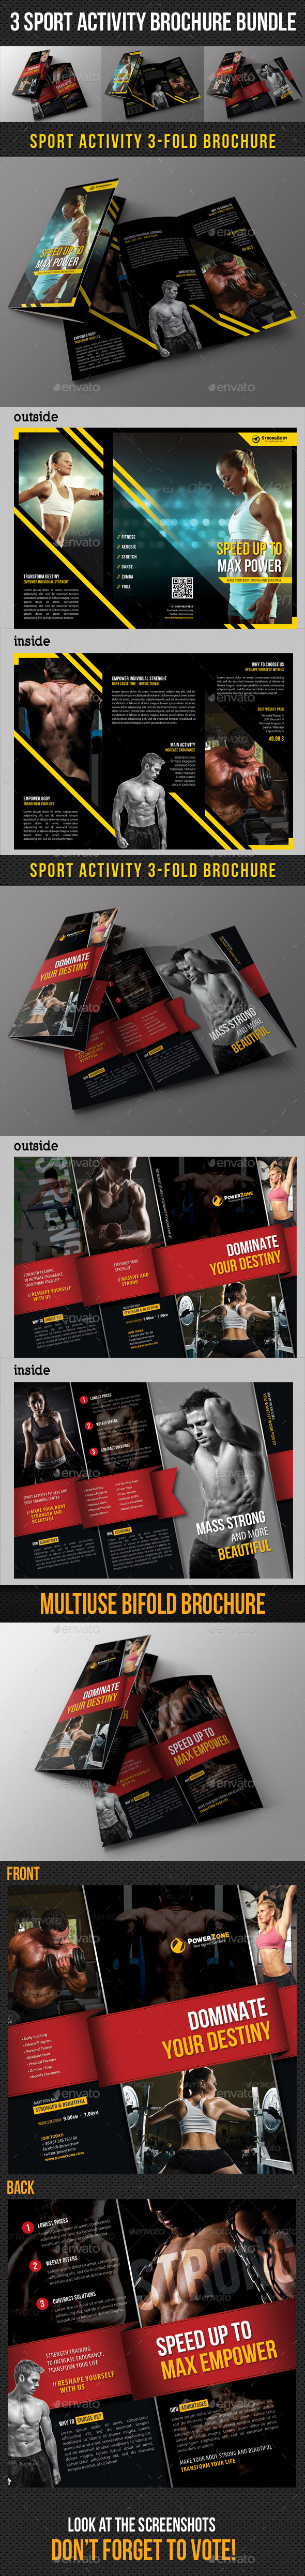 GraphicRiver 3 in 1 Sport Activity Brochure Bundle 10240923